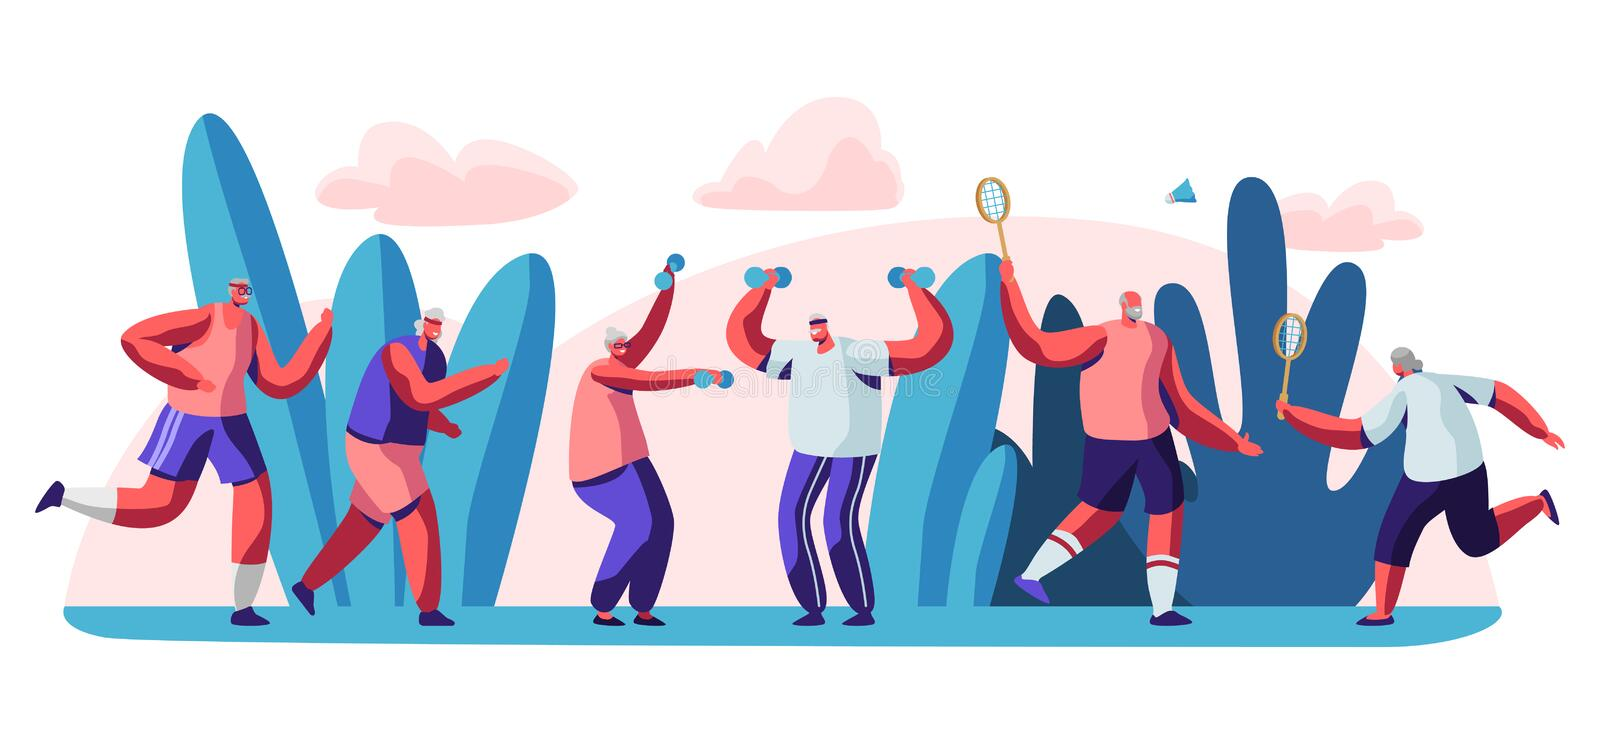 Elderly People Open Air Workout. Senior Men and Women Characters Running, Doing Exercises, Playing Badminton Outdoors Together royalty free illustration